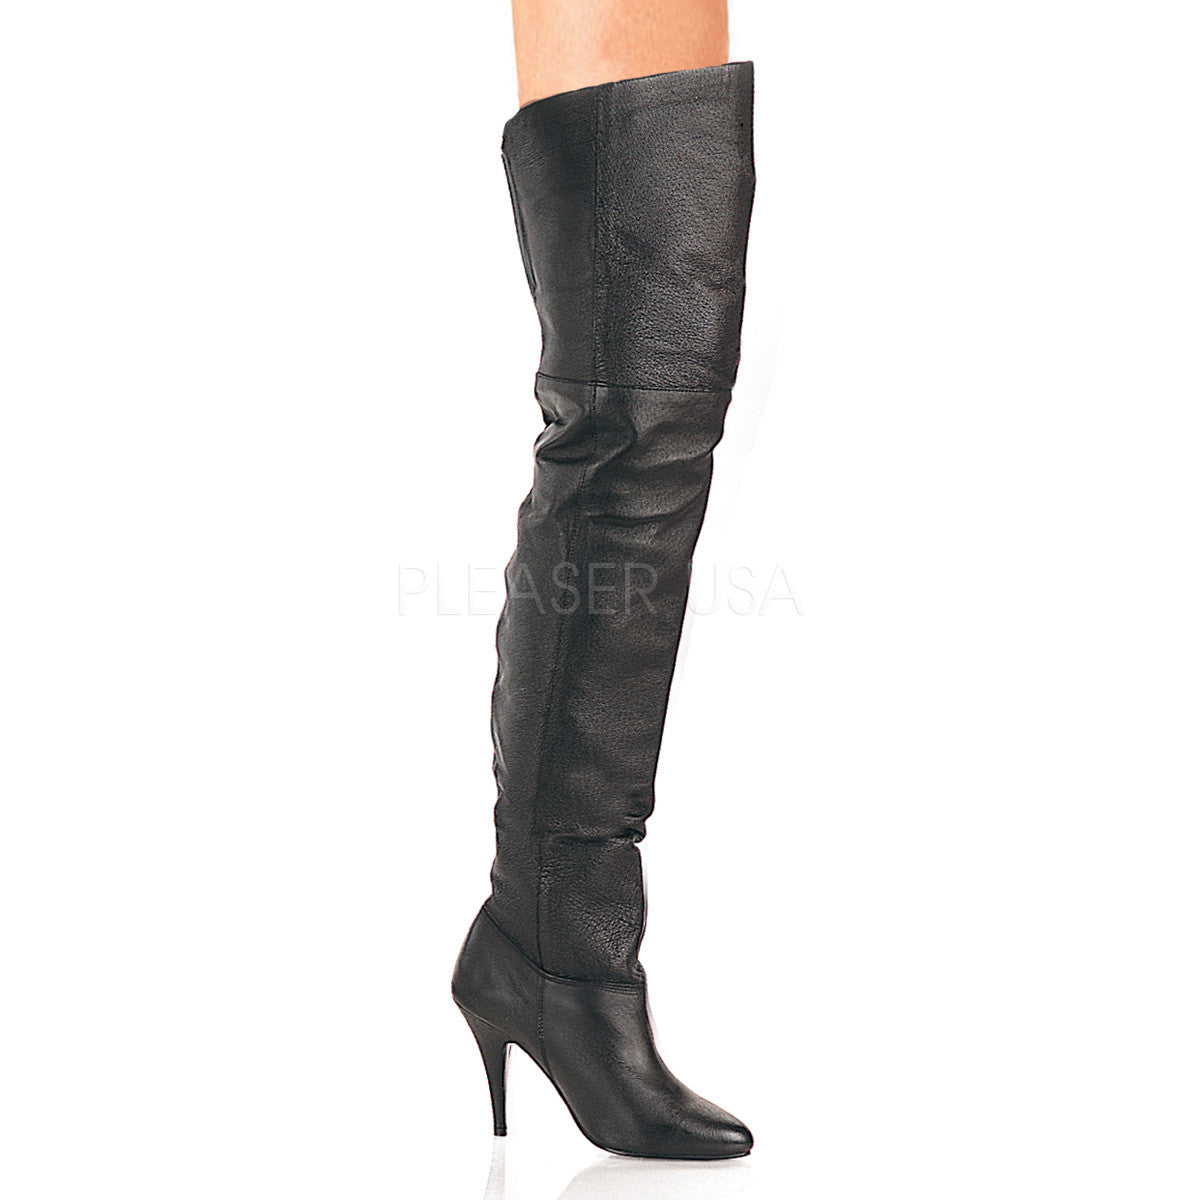 pleaser legend 8868 black leather thigh high boots